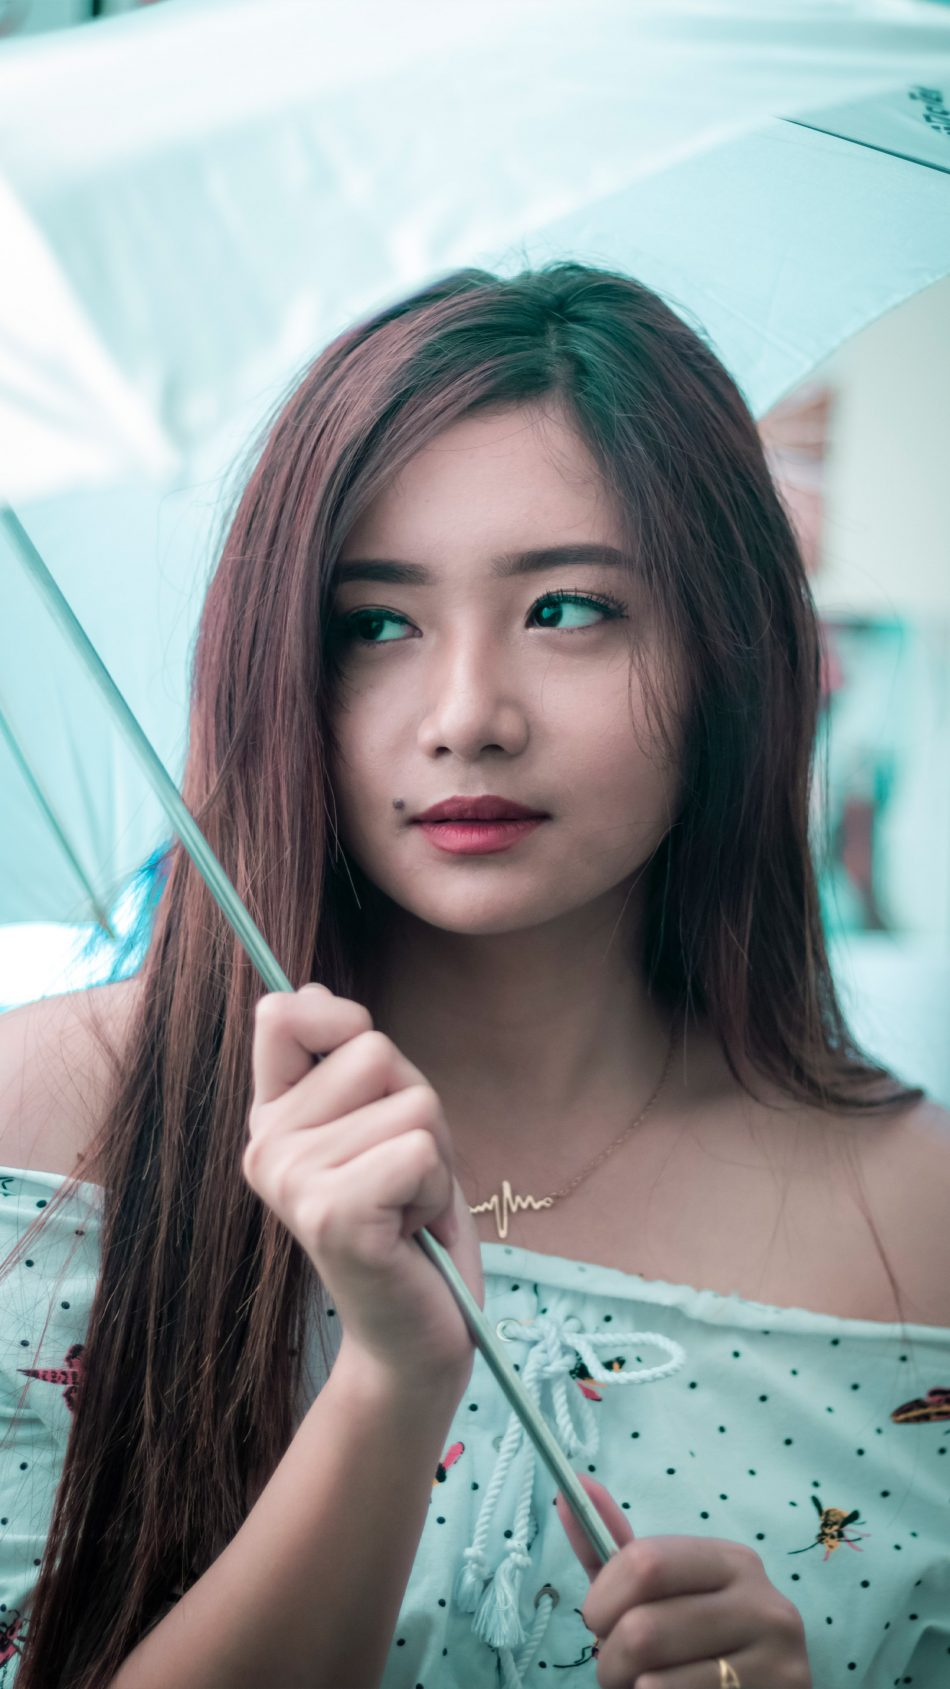 Cute Asian Model Umbrella Photography 4K Ultra HD Mobile Wallpaper